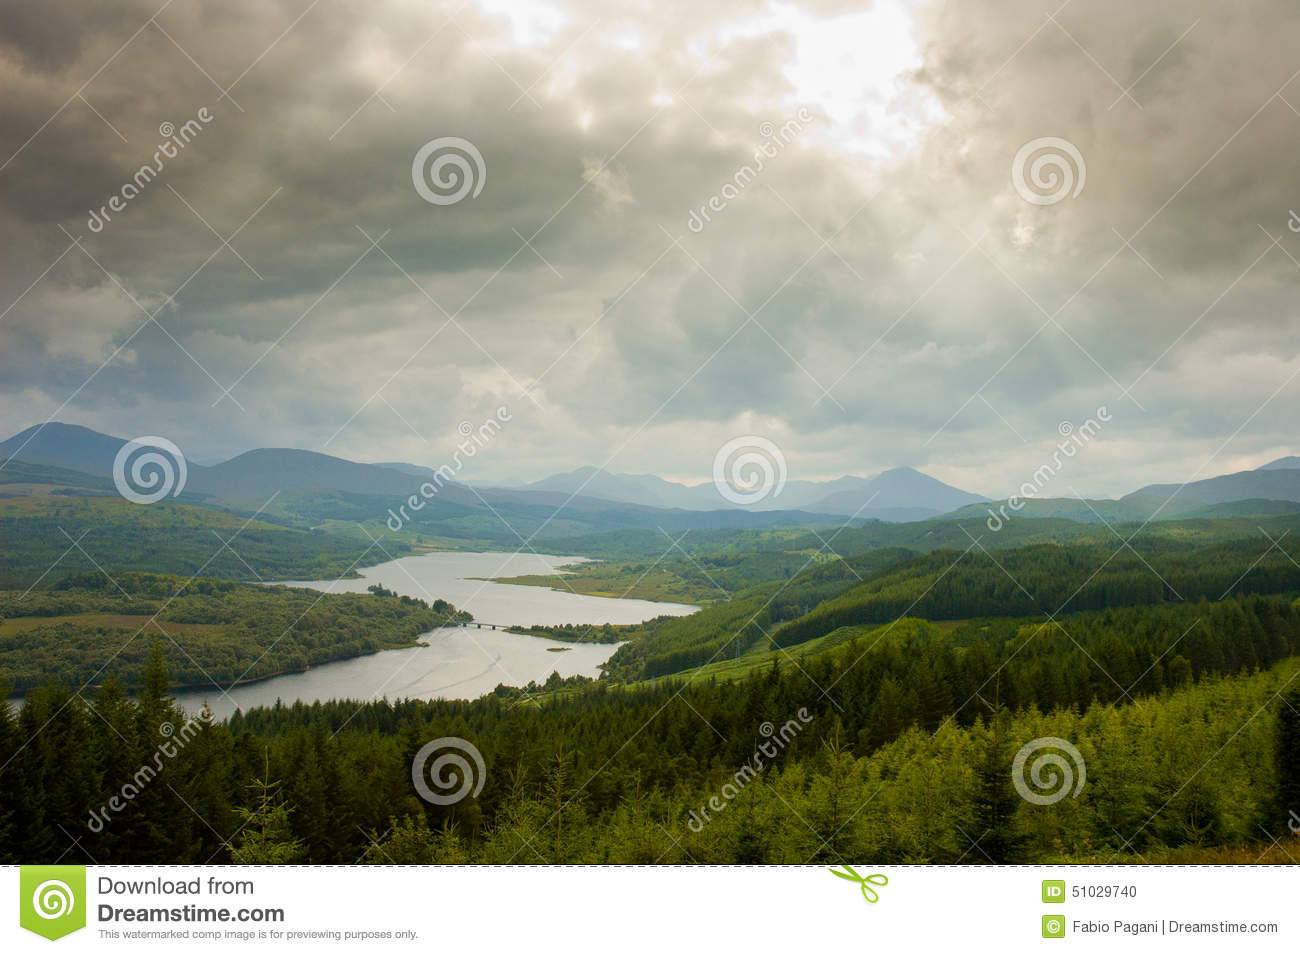 Aerial view of Scotland, highlands, with dramatic cloudy sky